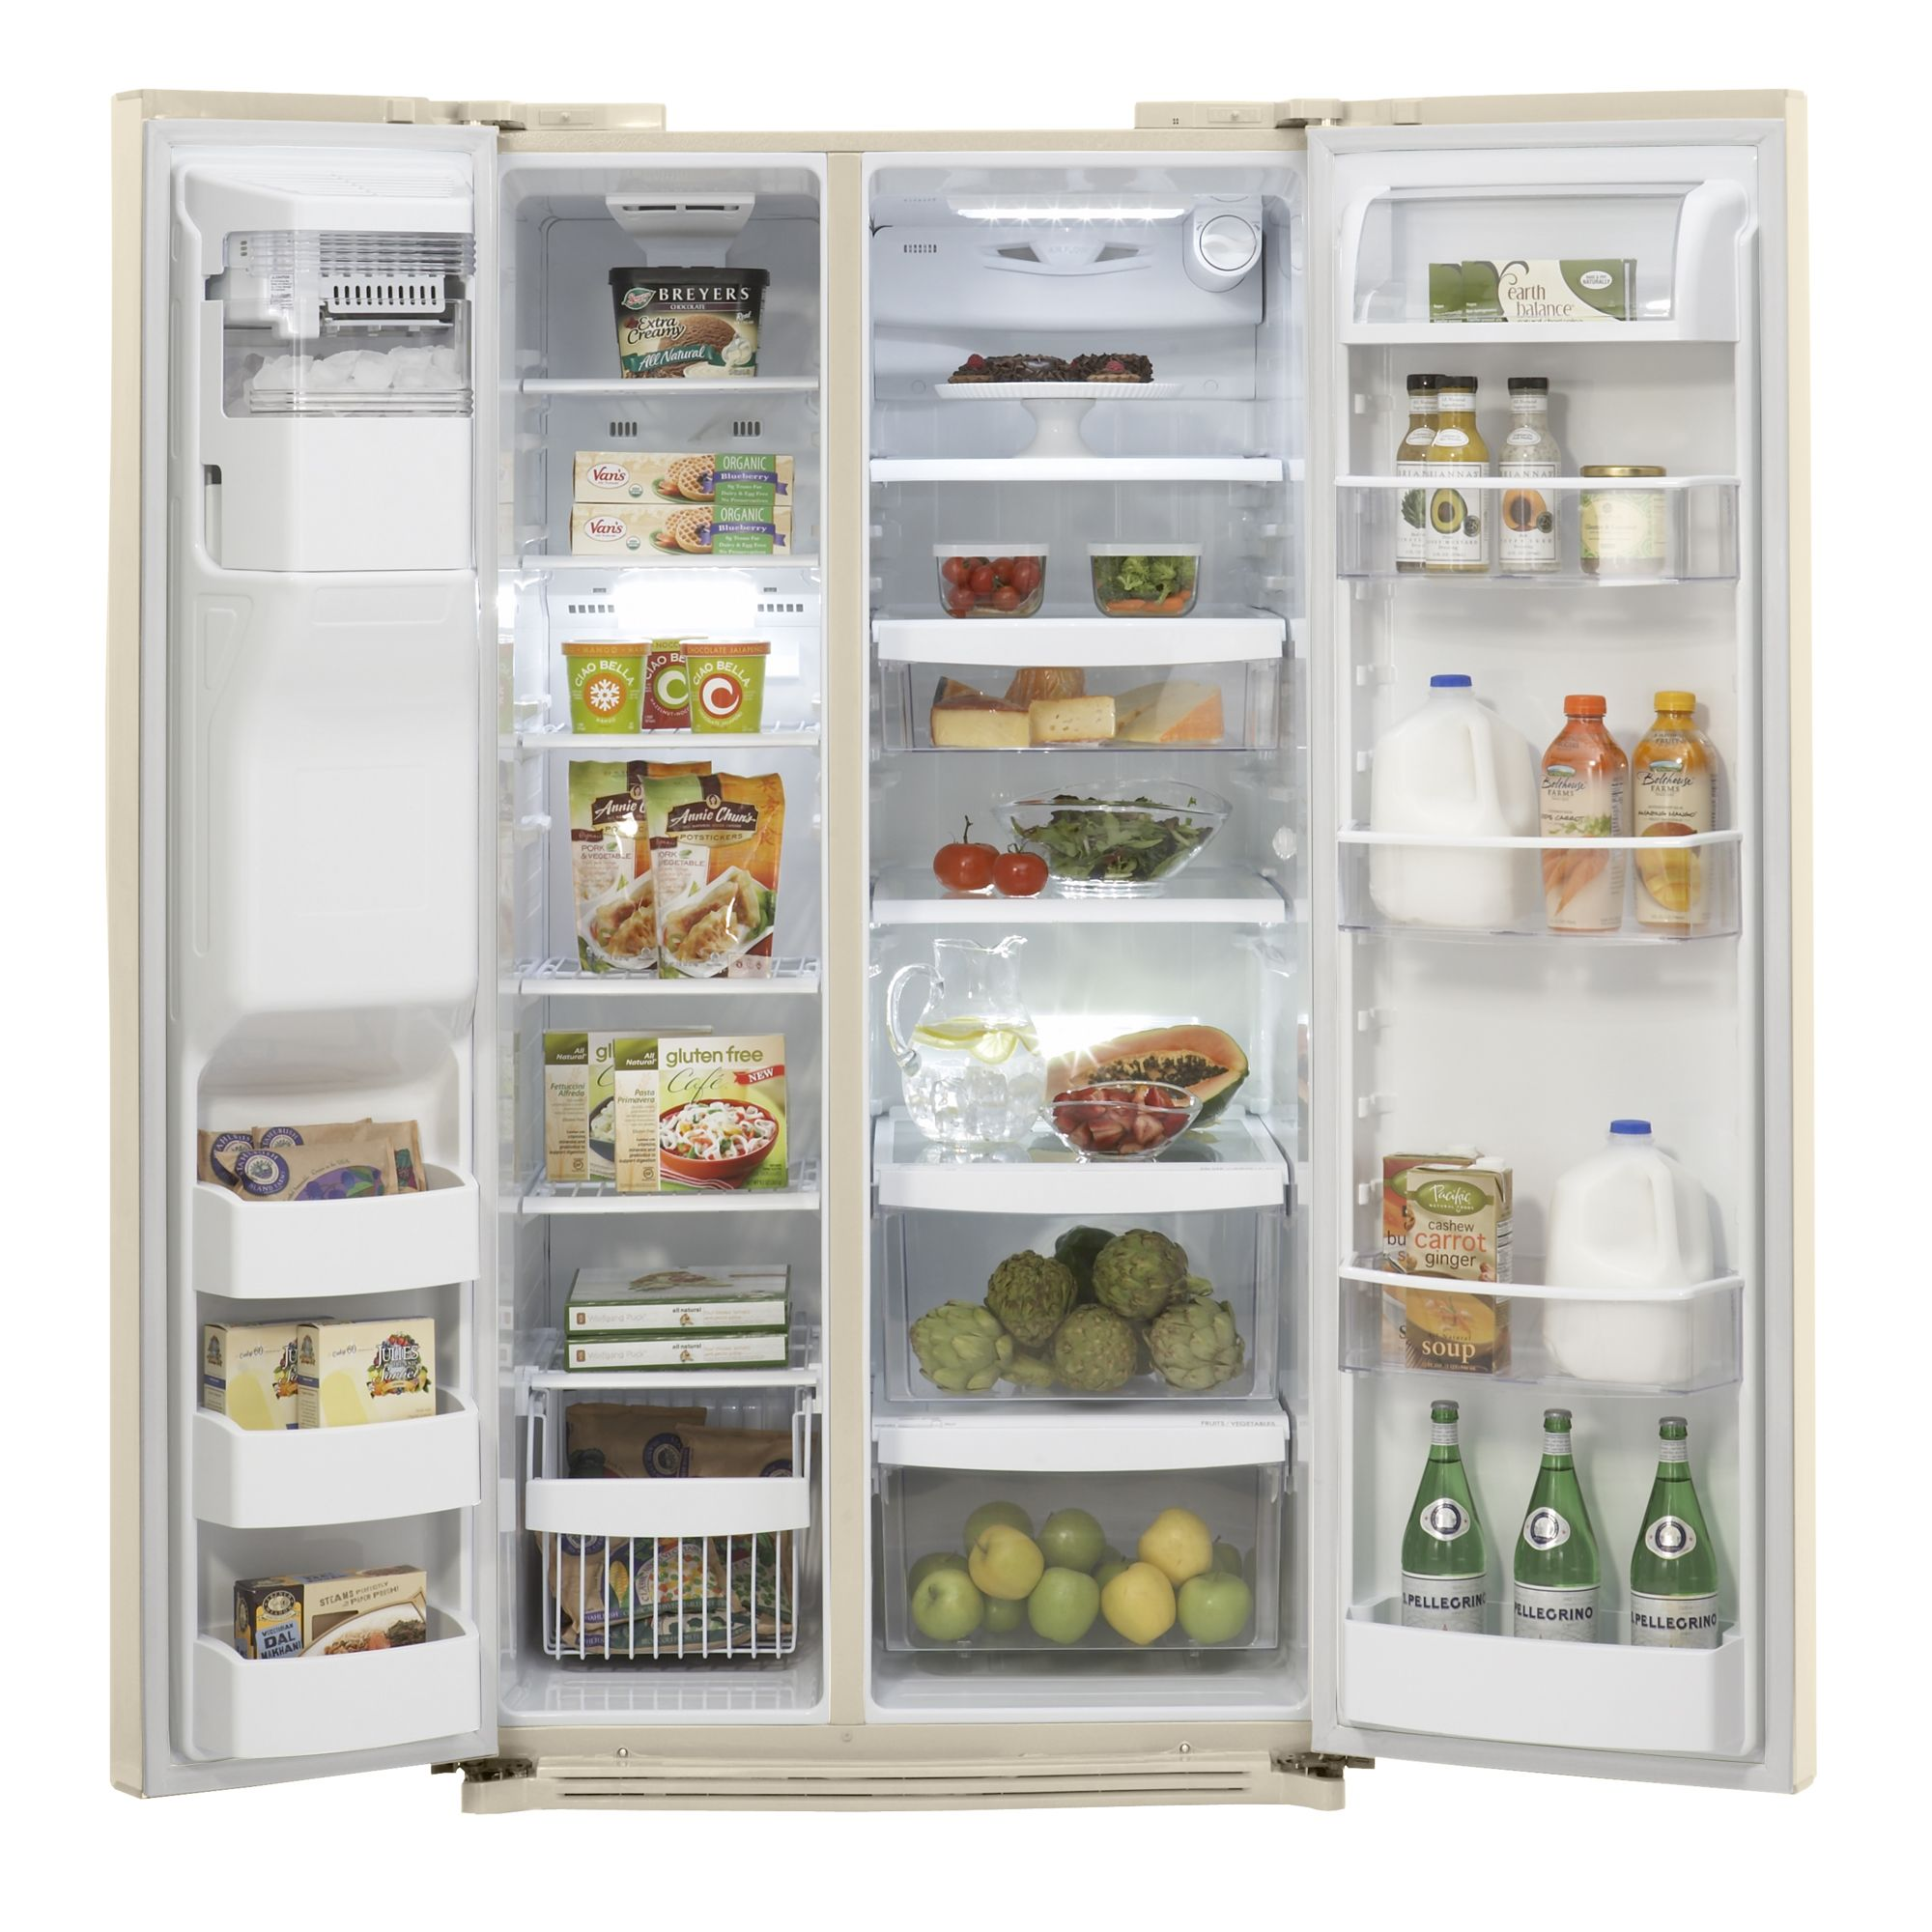 Kenmore Elite 26.5 cu. ft. Side-by-Side Refrigerator